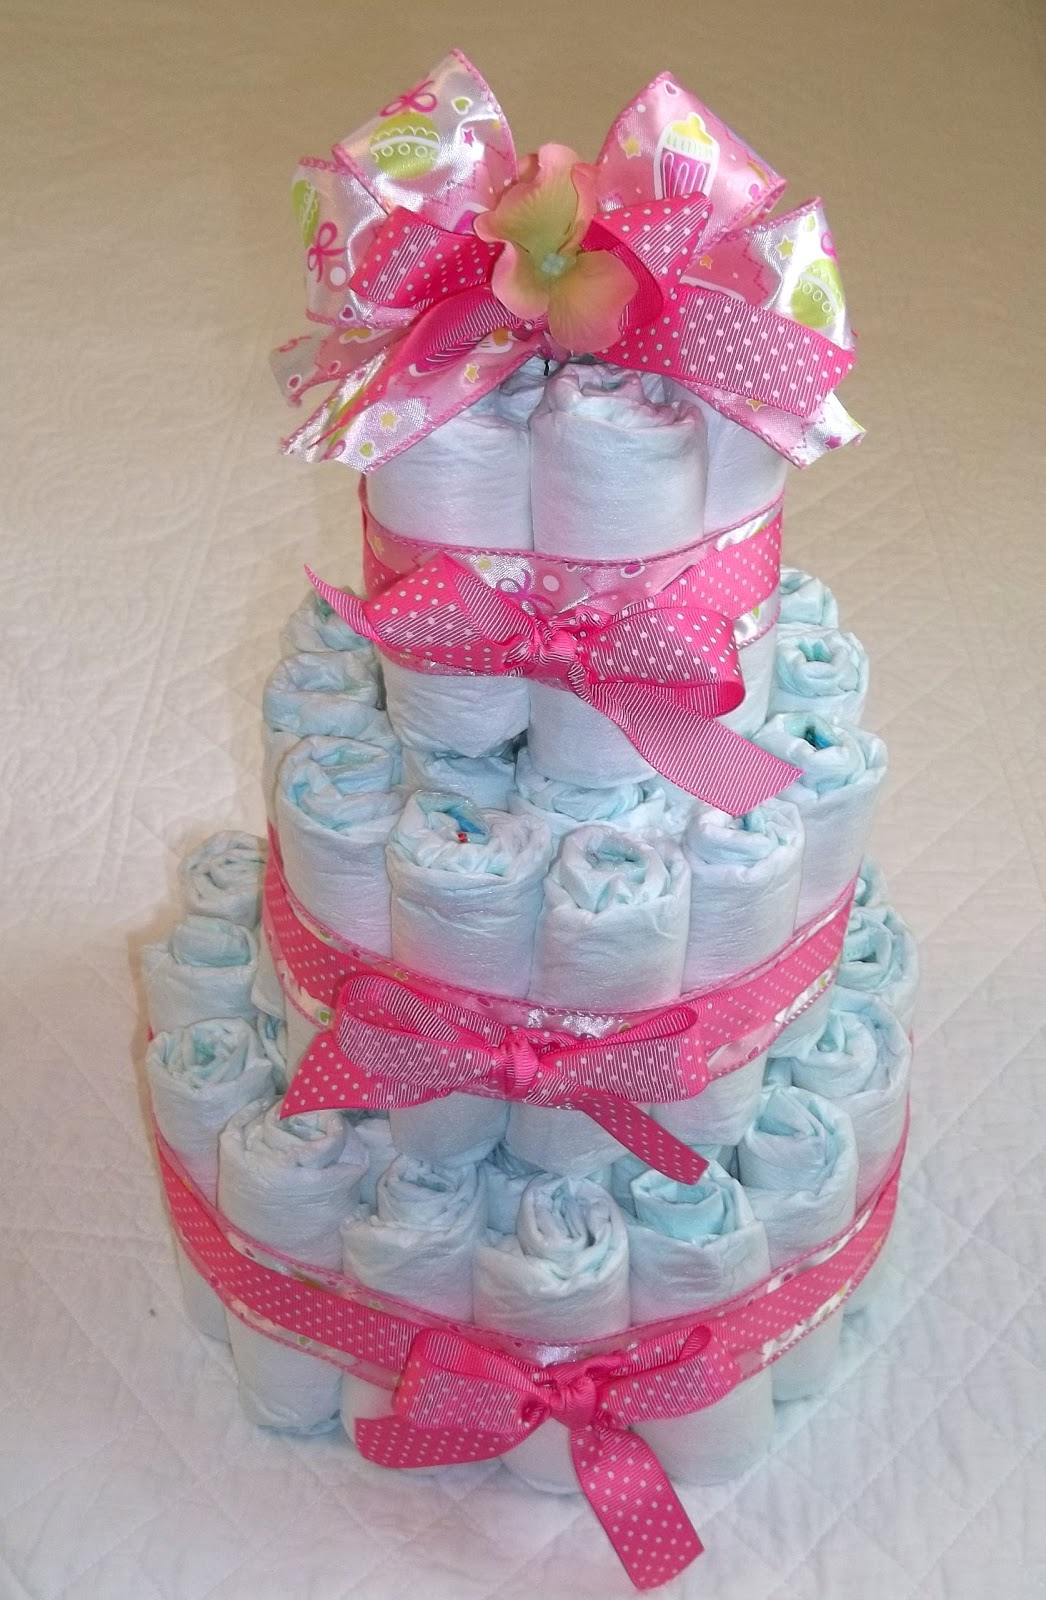 diaper cake for a friend who is throwing a baby shower diaper cakes ...